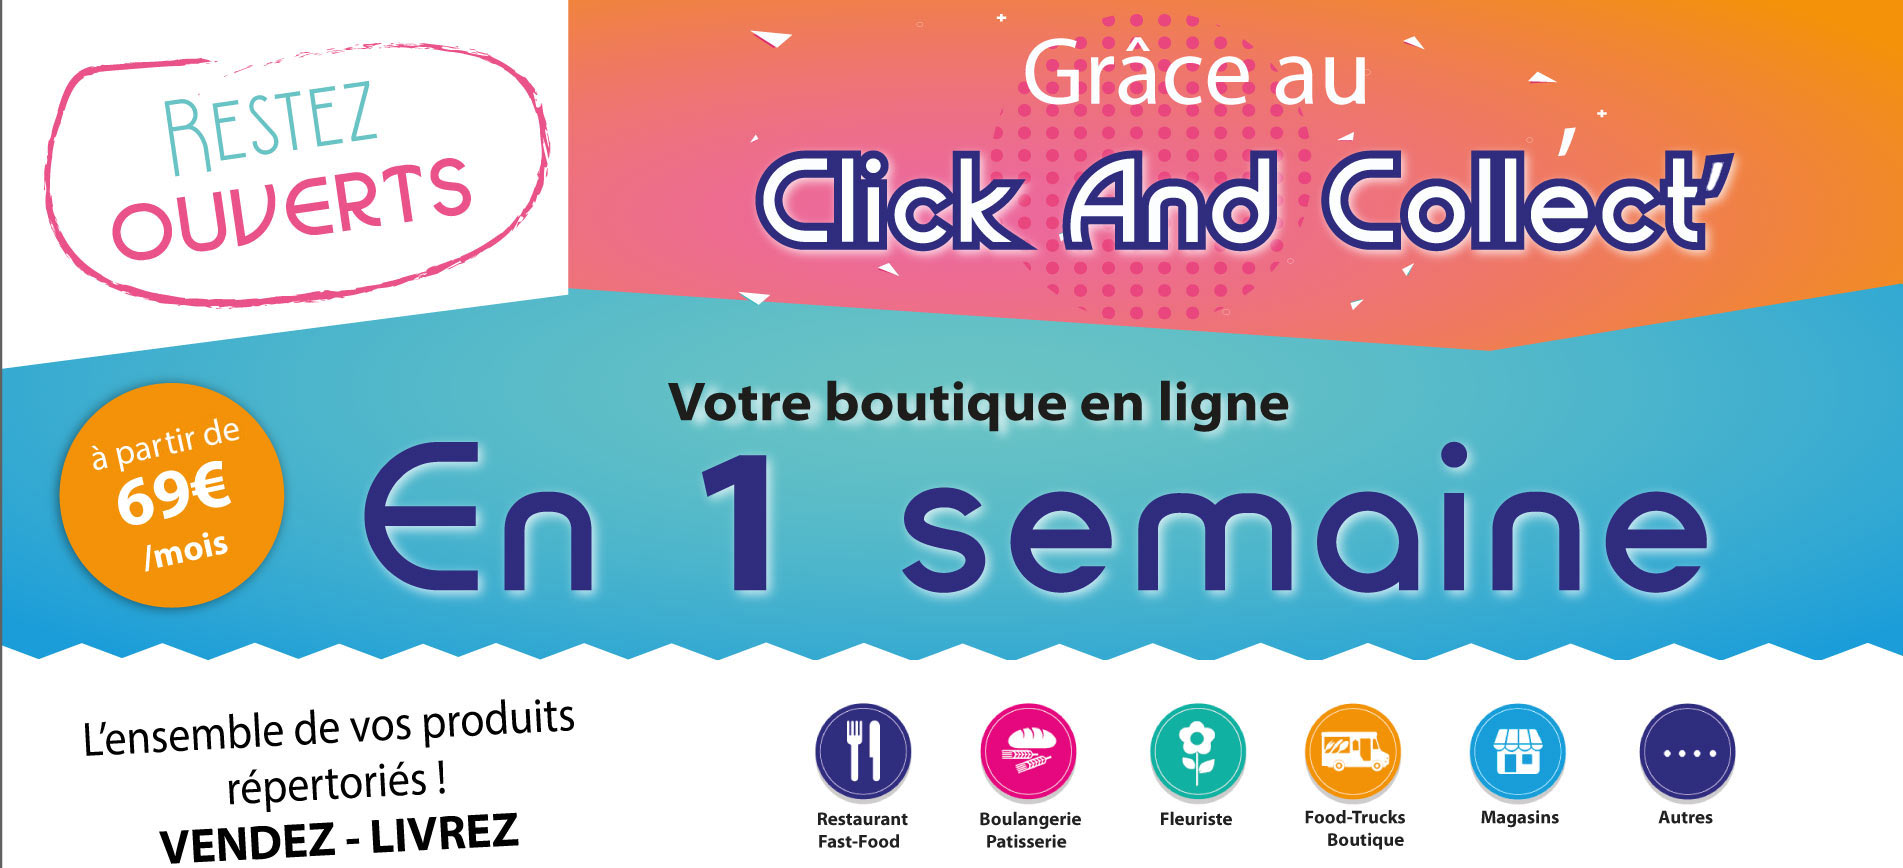 click-and-collect-boutique-en-ligne2